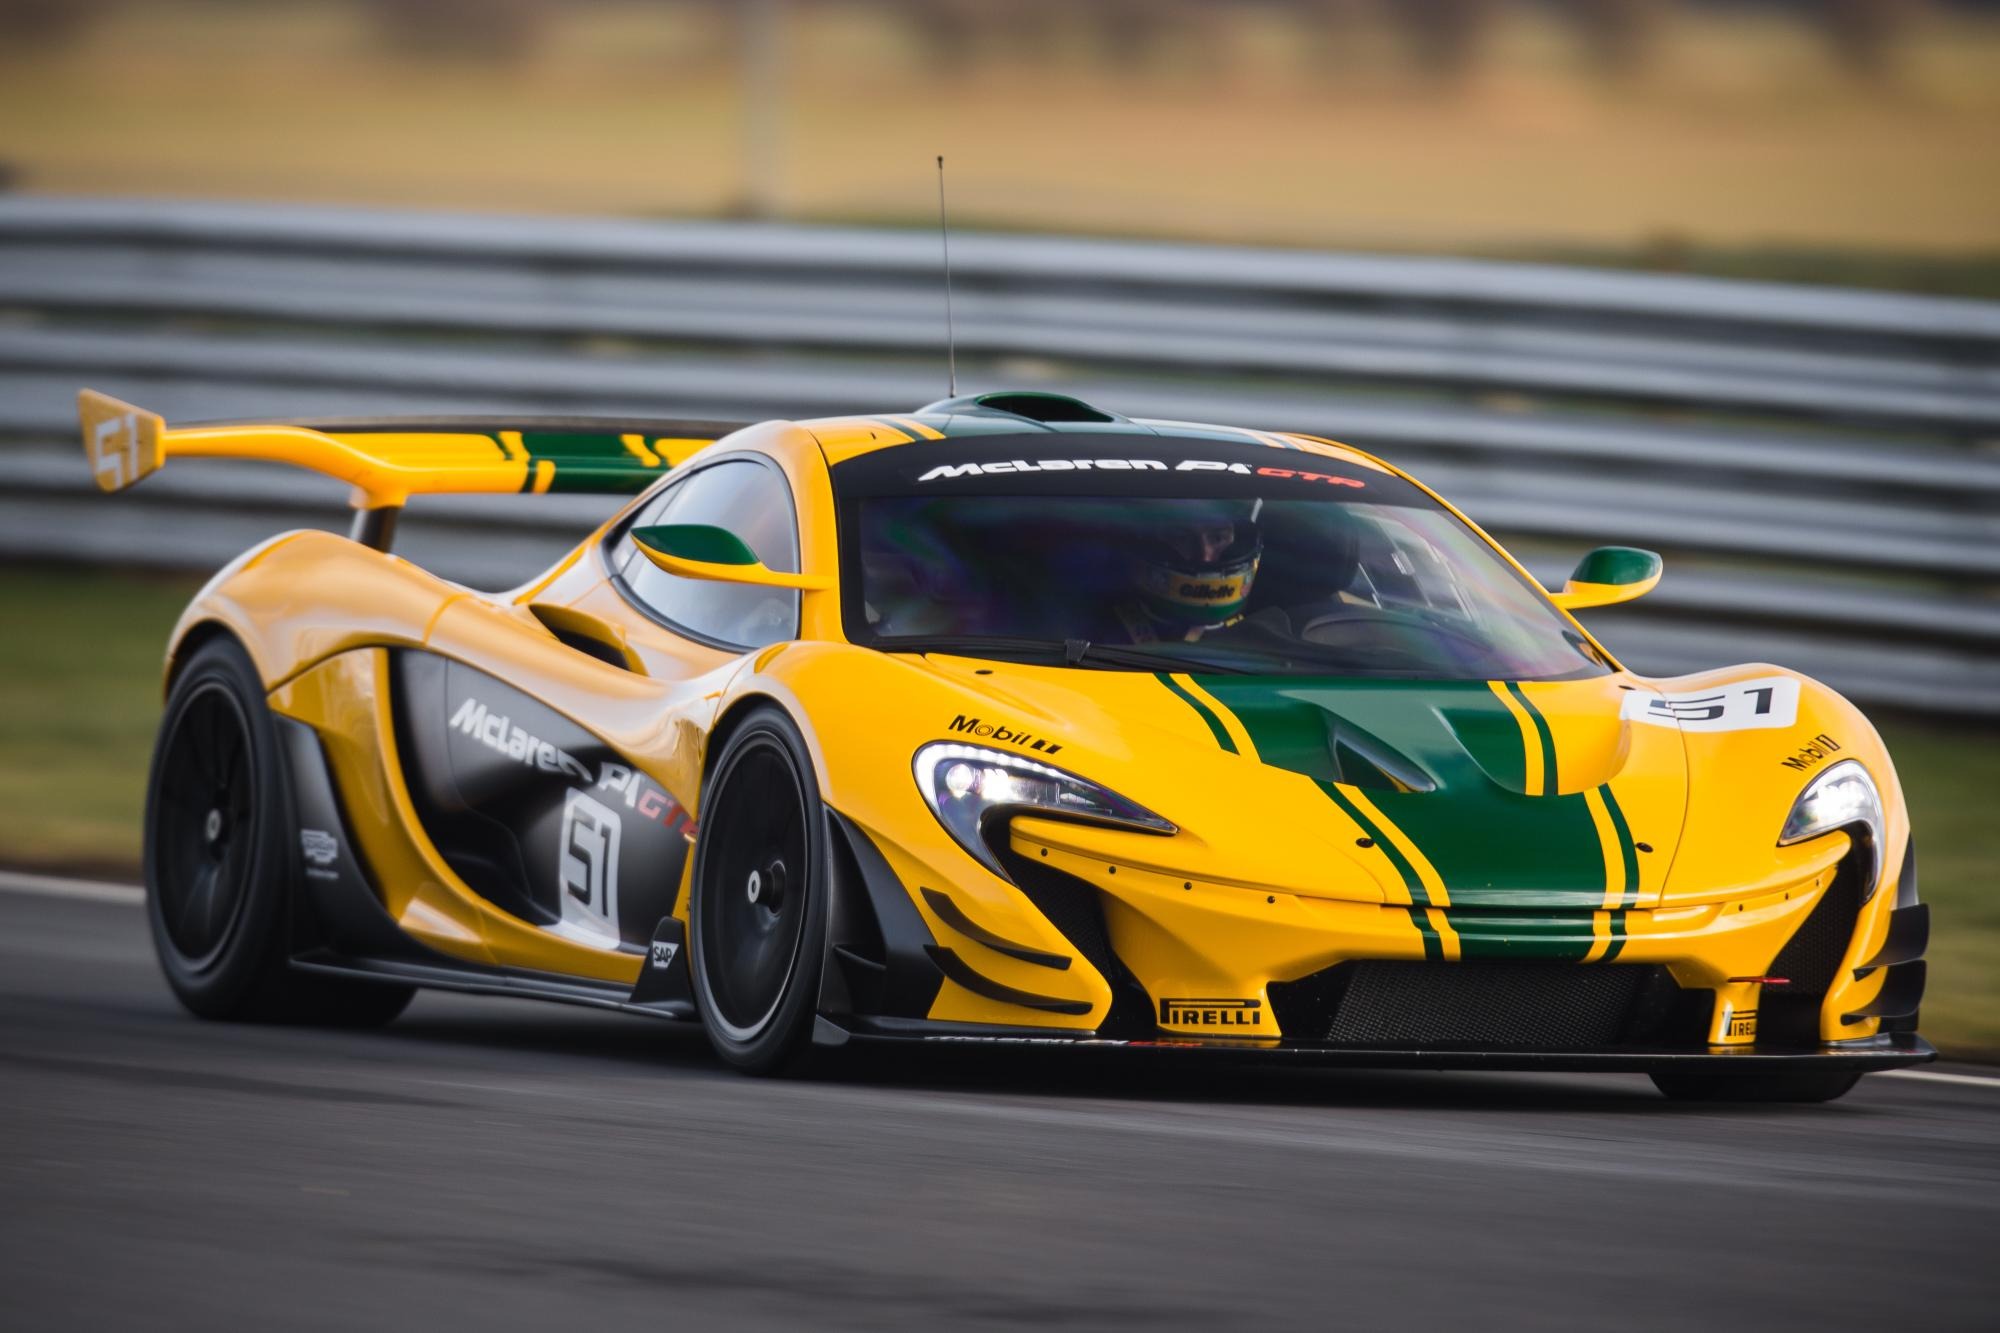 Classic Car 4k Wallpapers Road Legal Mclaren P1 Gtr For Sale At 7 2 Million In